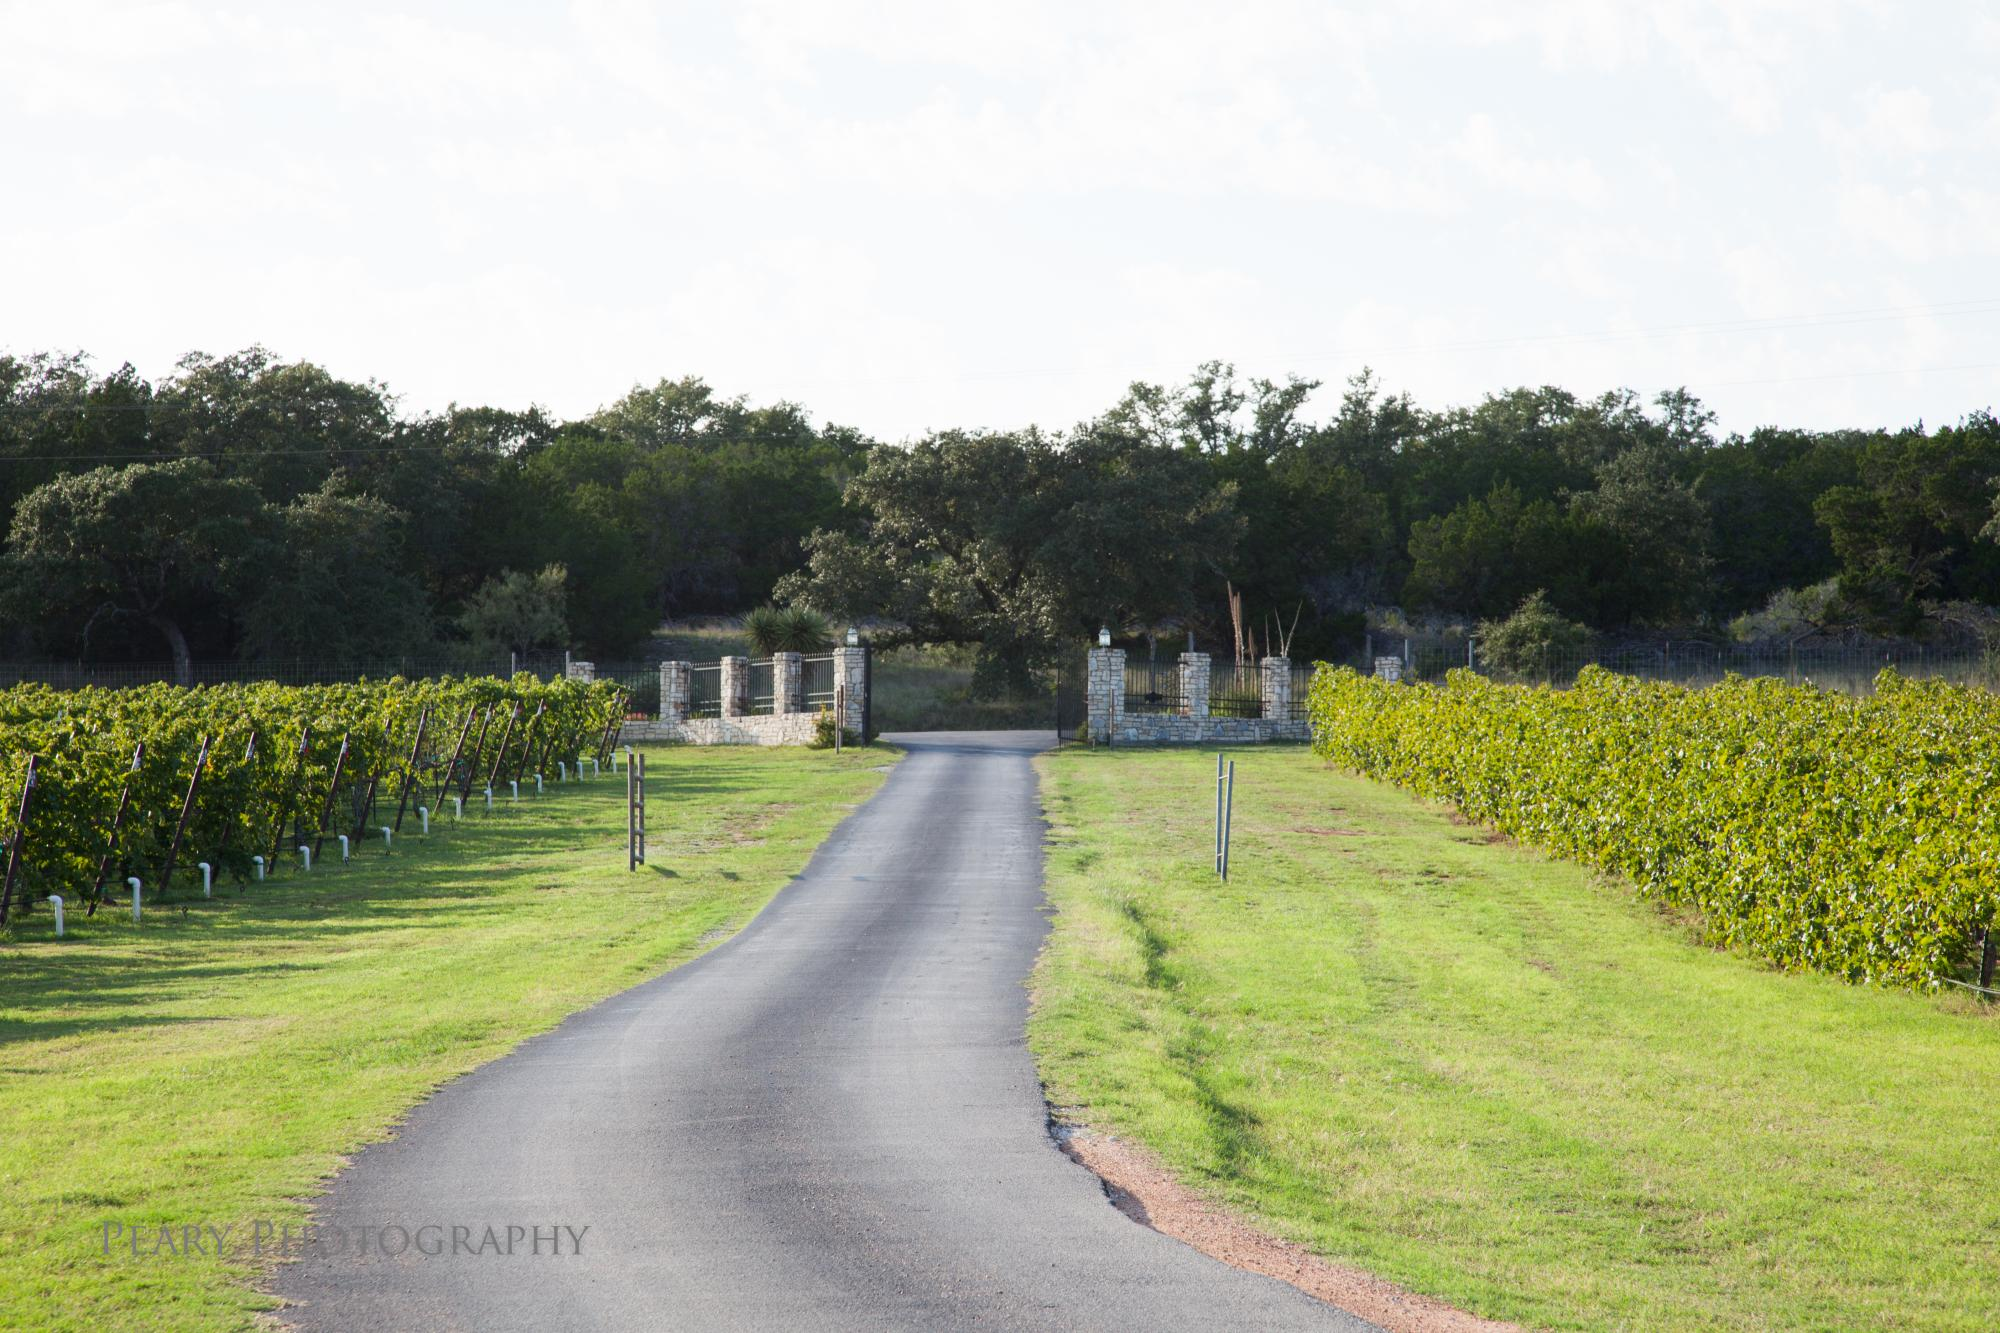 Vineyard_Entrance_2_-_Peary_Photography.jpg